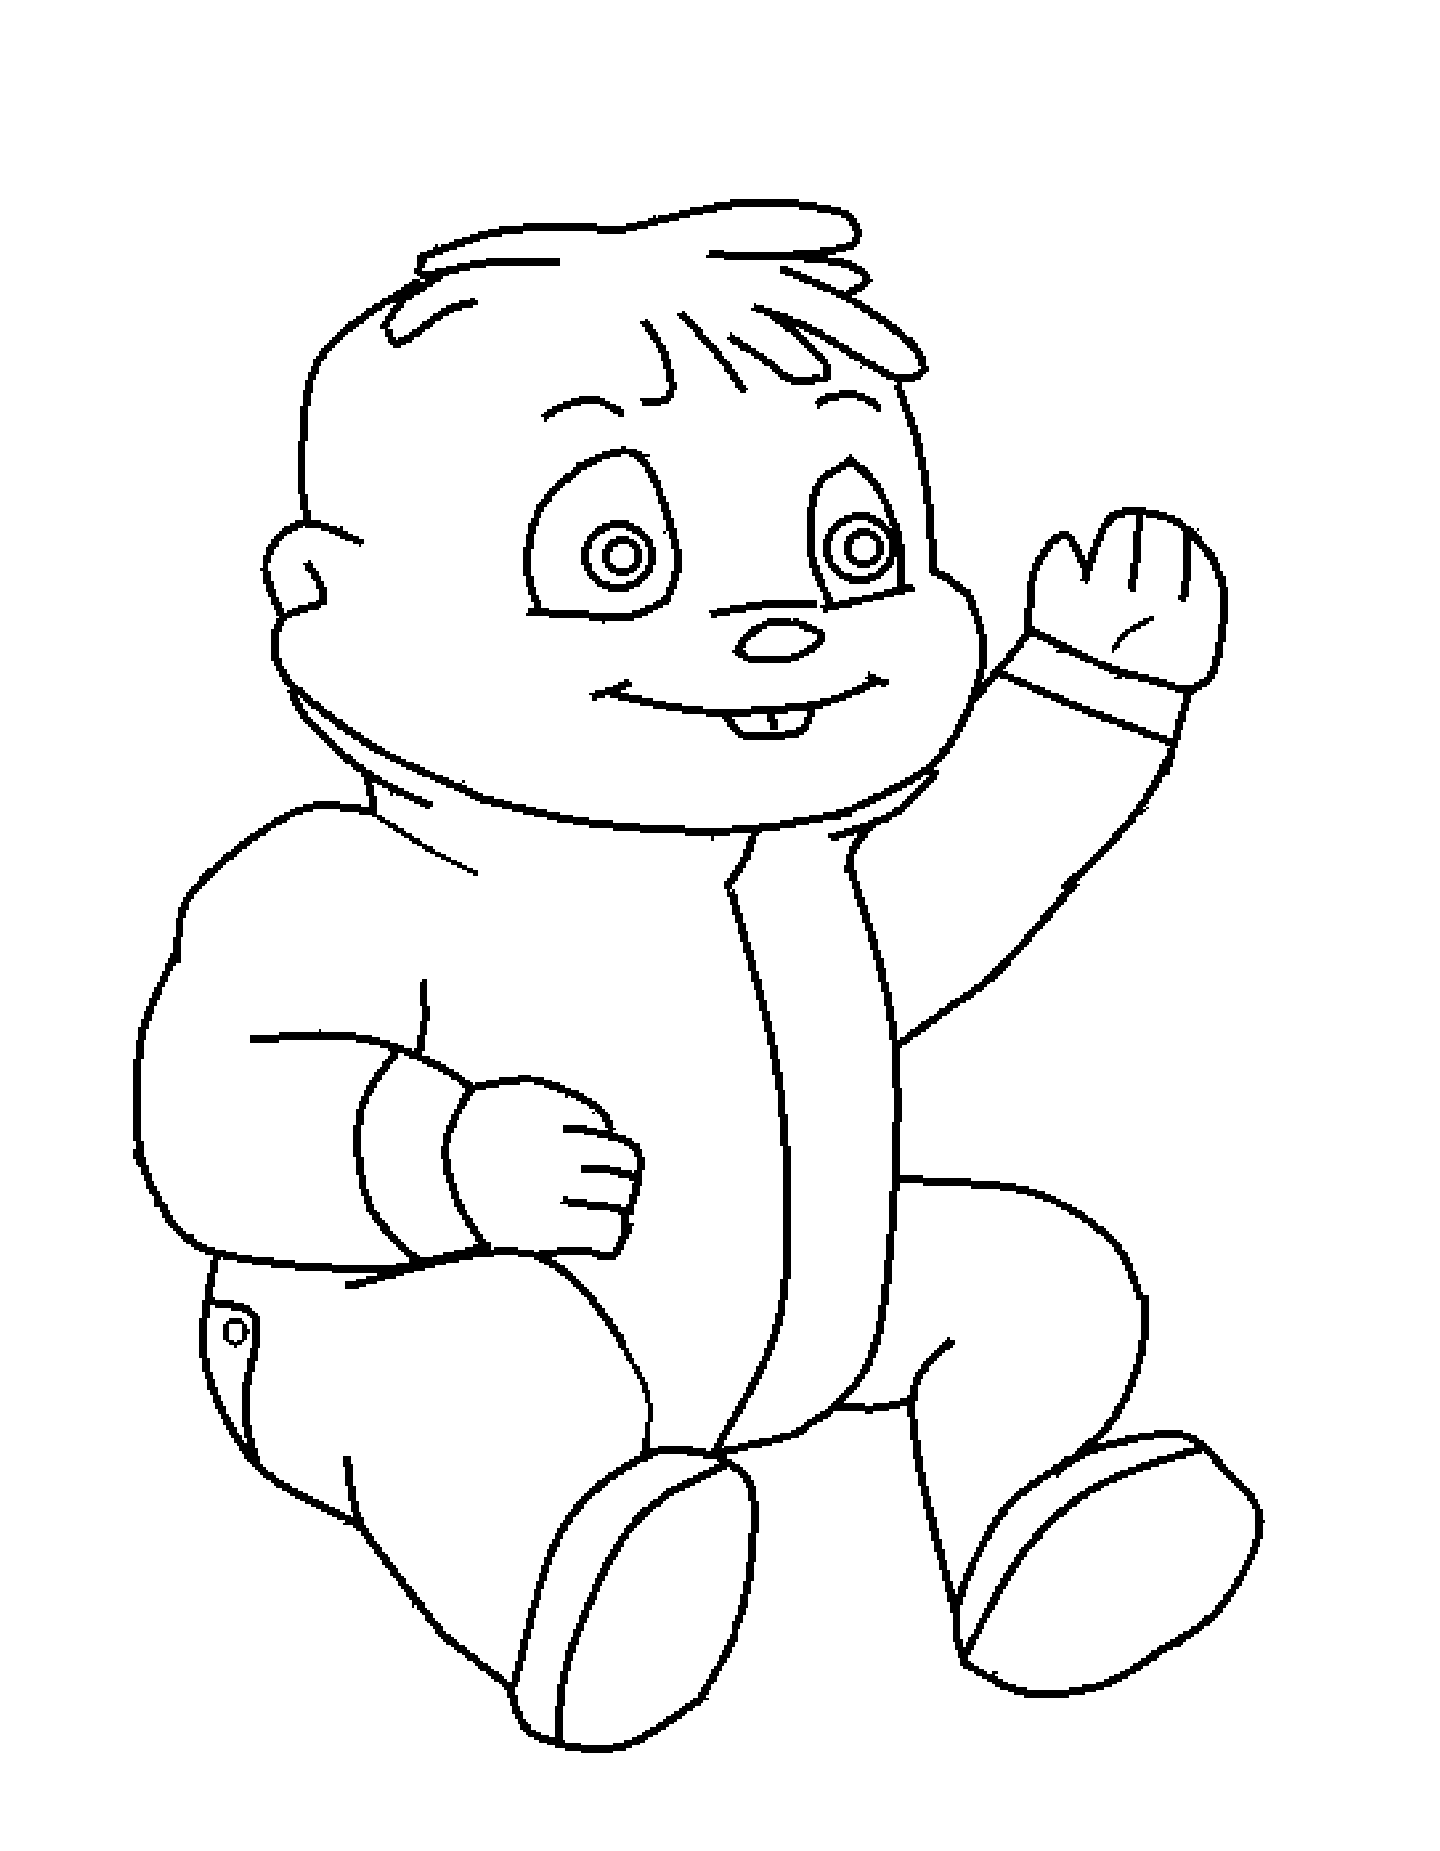 Chipmunks Coloring Pages Free